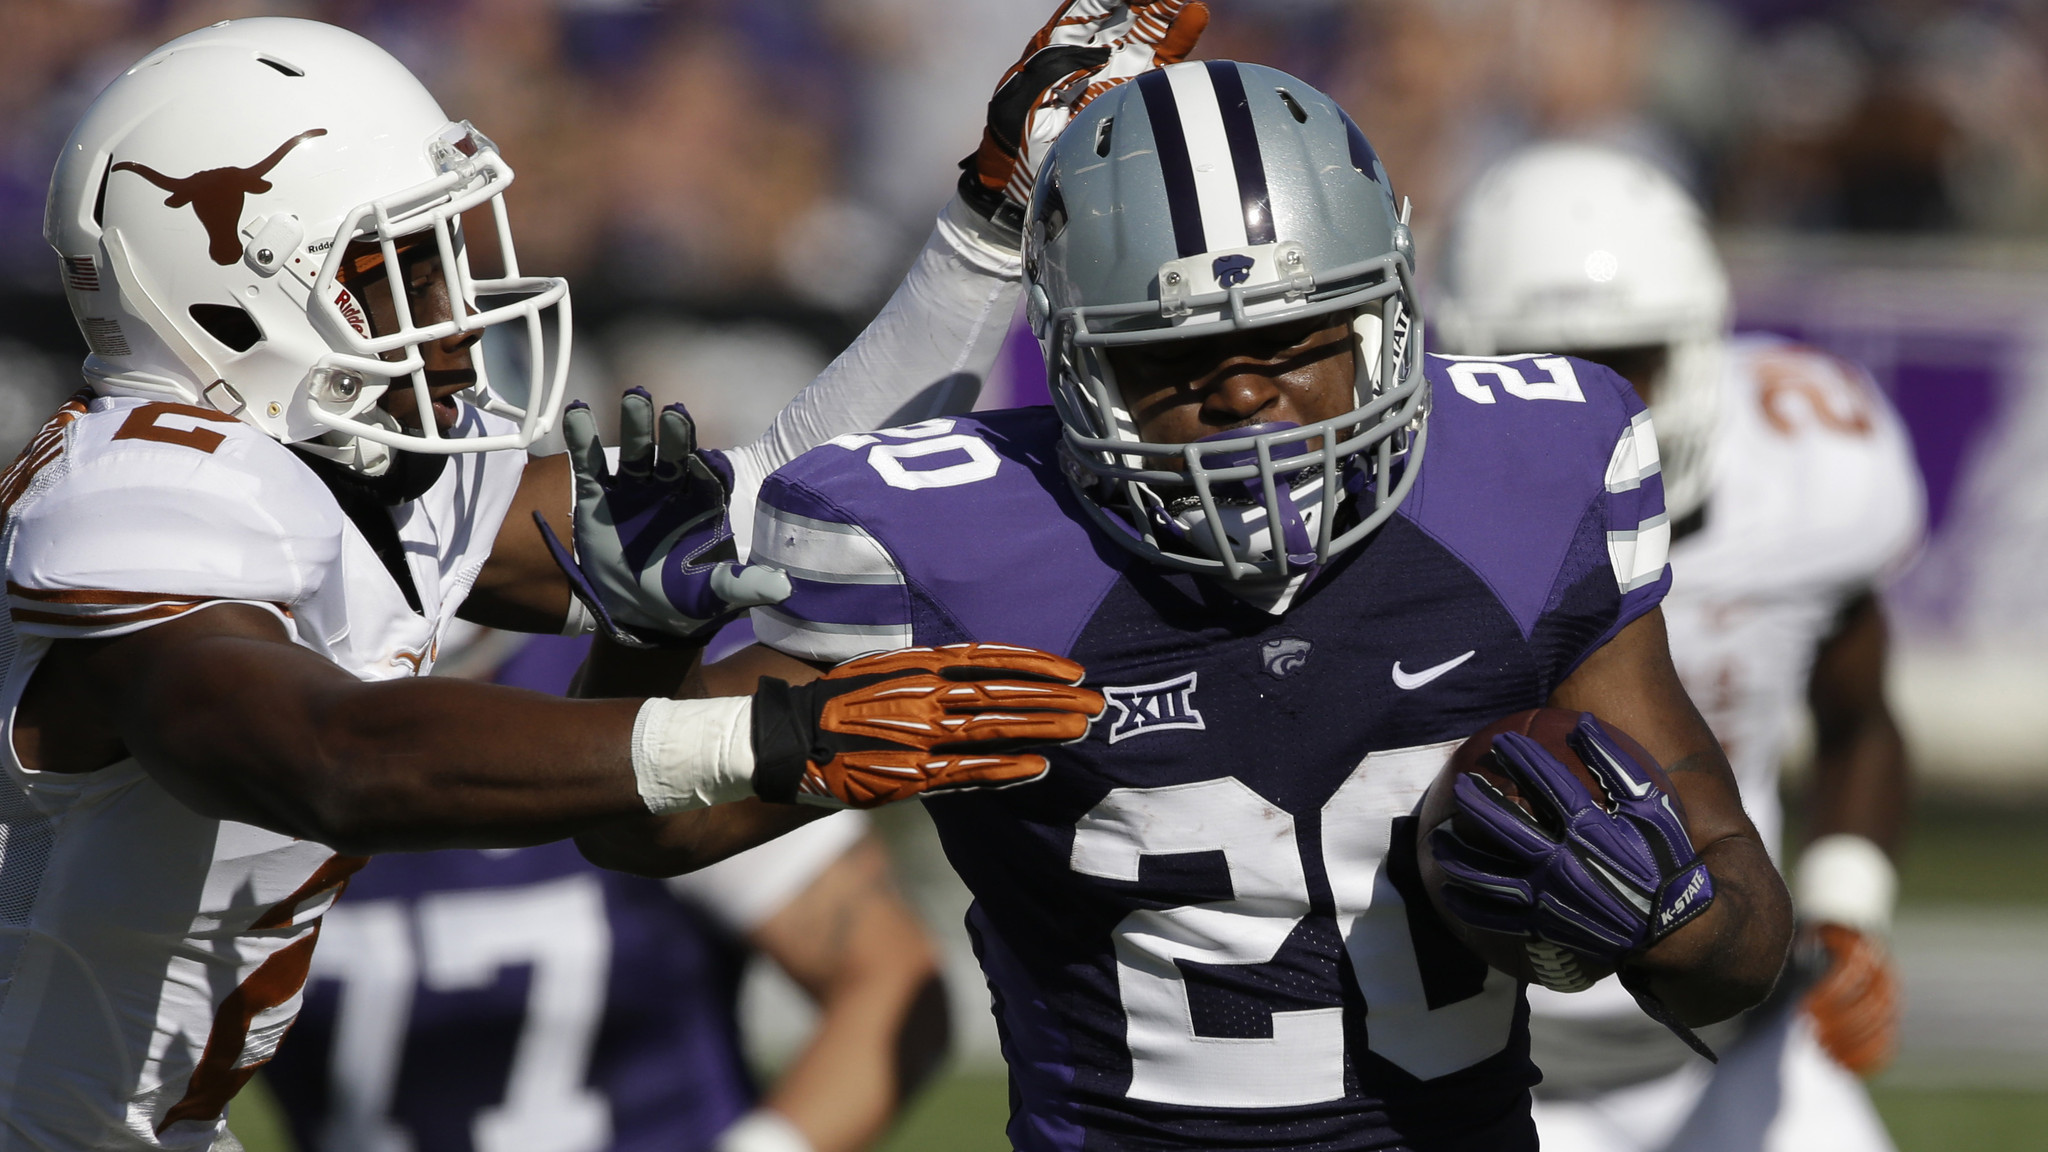 Kansas State puts up strong defensive effort in 23-0 shutout of Texas